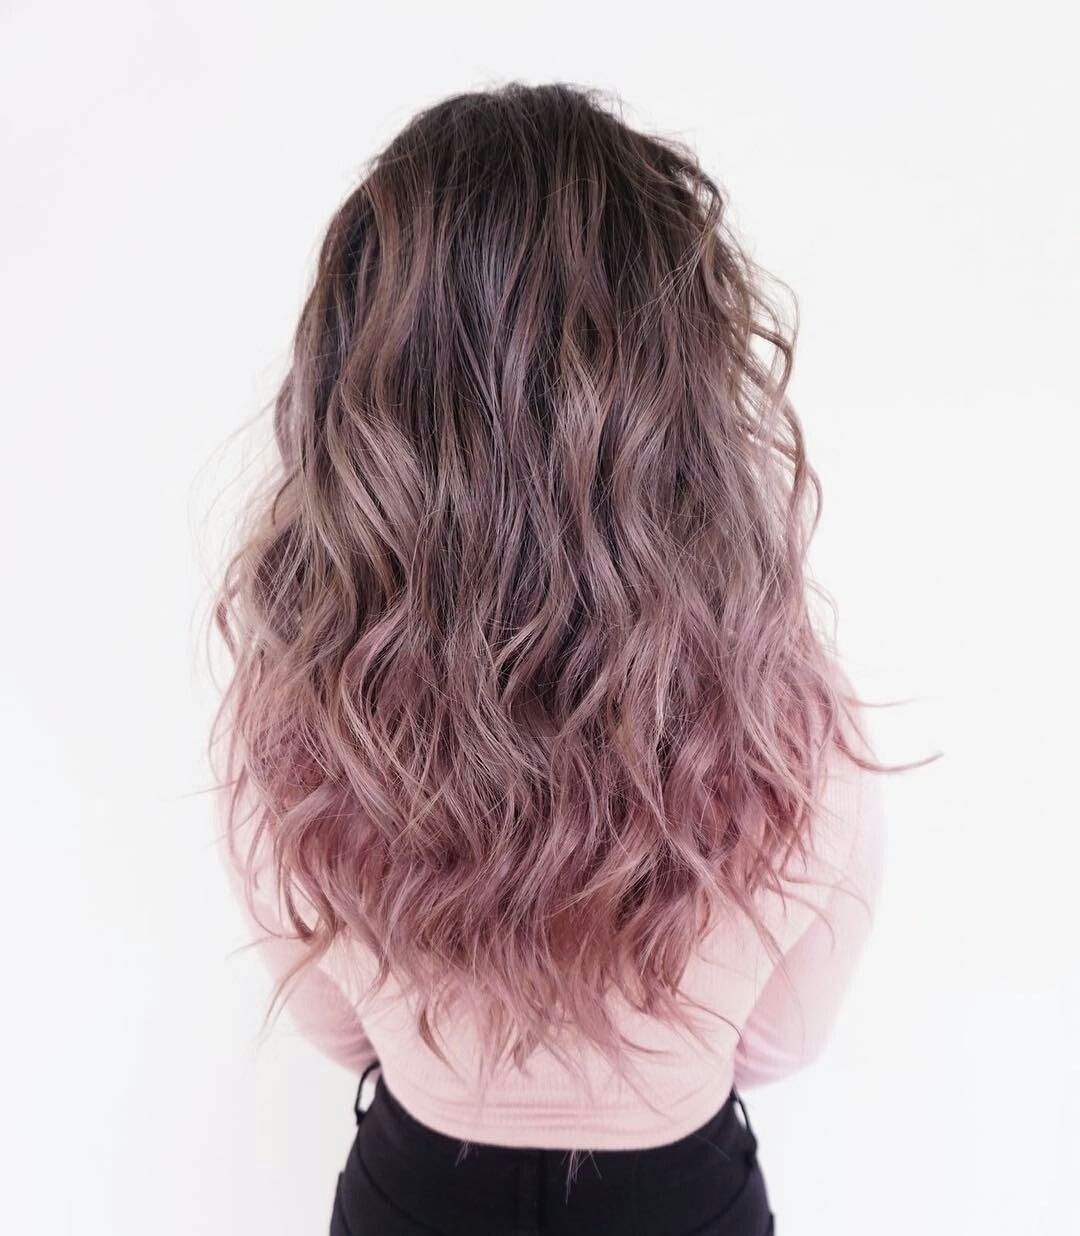 Pin By Astri Fian On Hair 3 Hair Styles Dyed Hair Cool Hairstyles